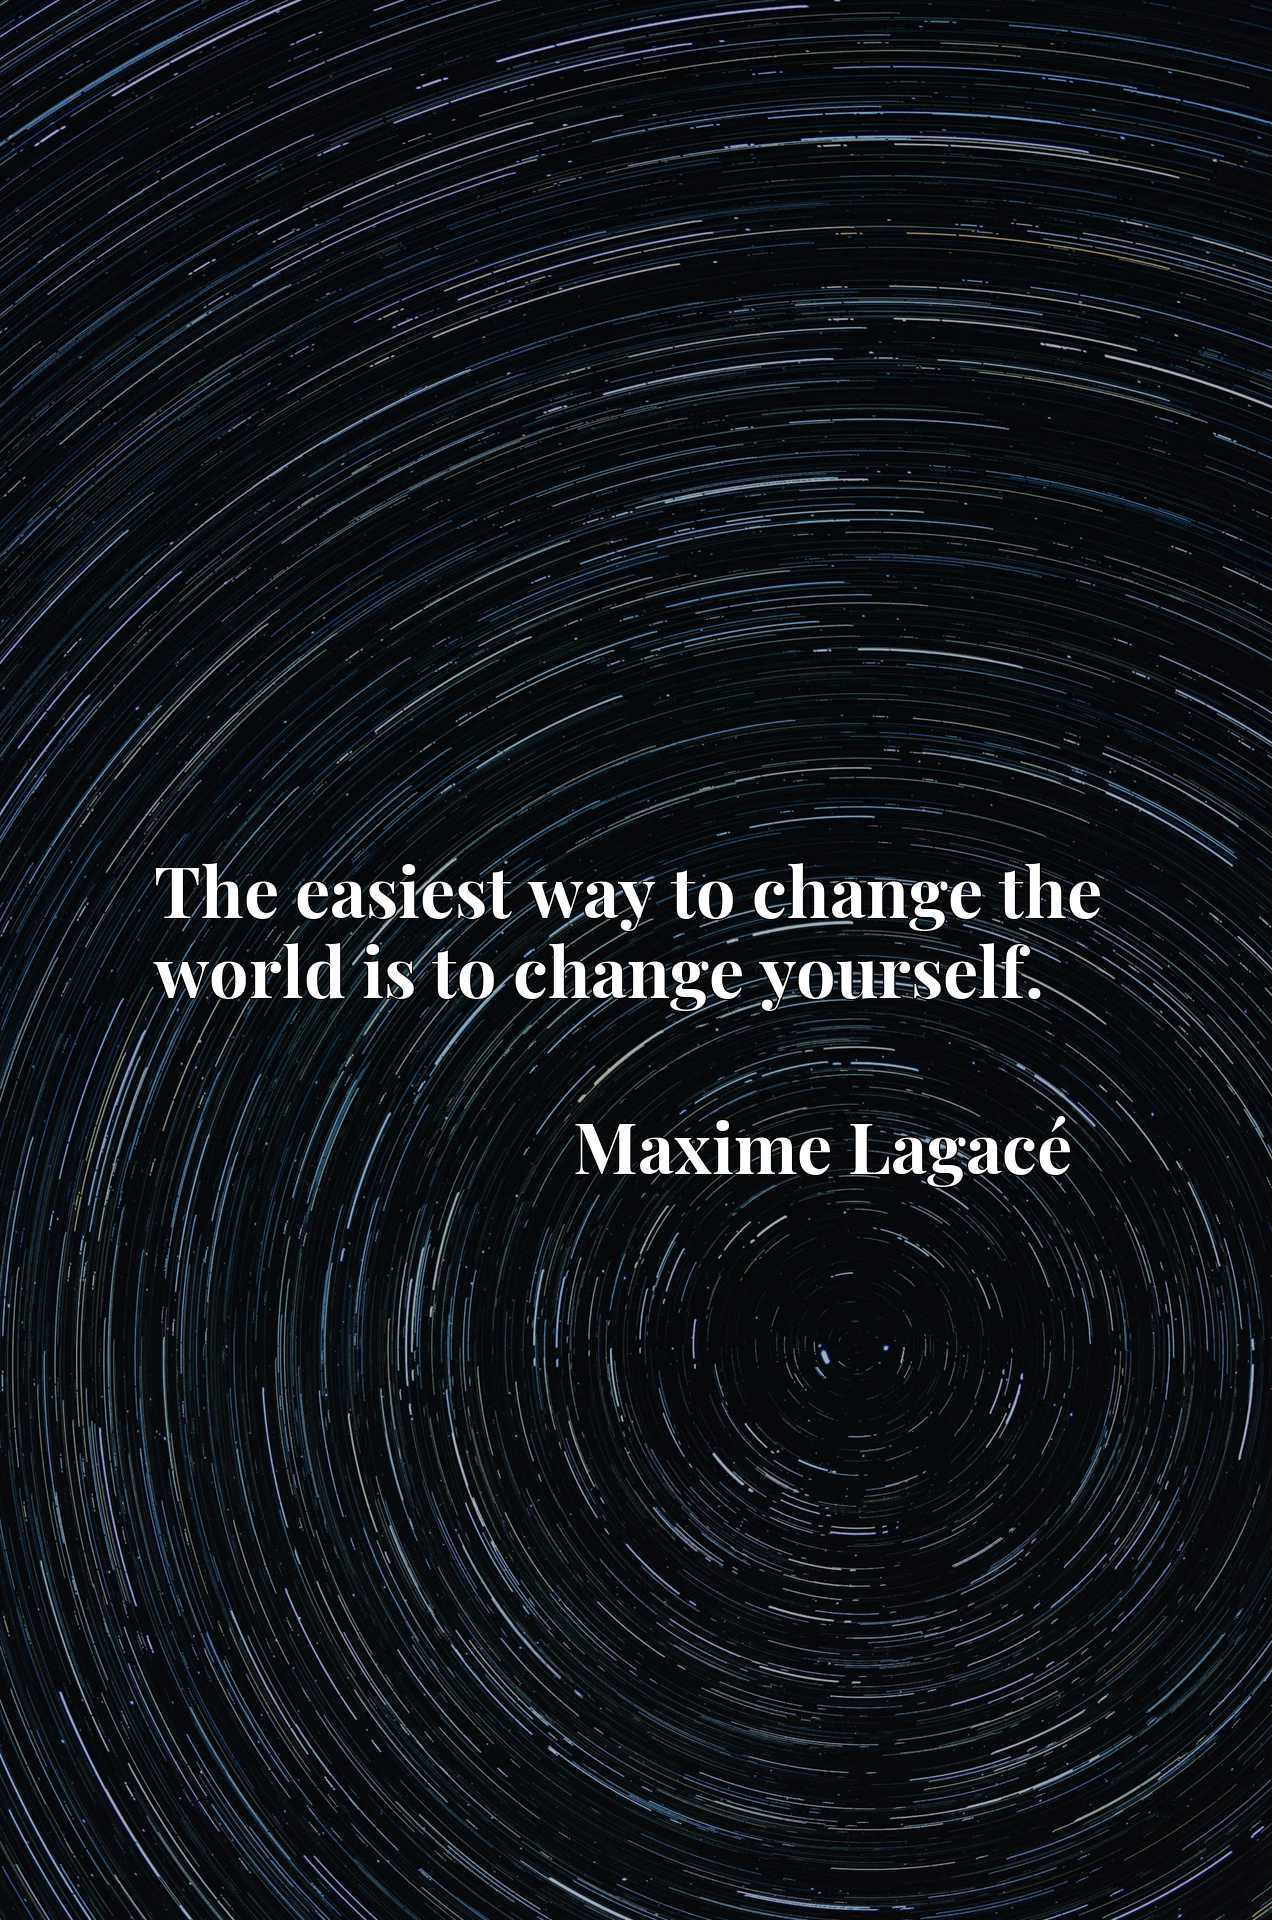 Quote Picture :The easiest way to change the world is to change yourself.